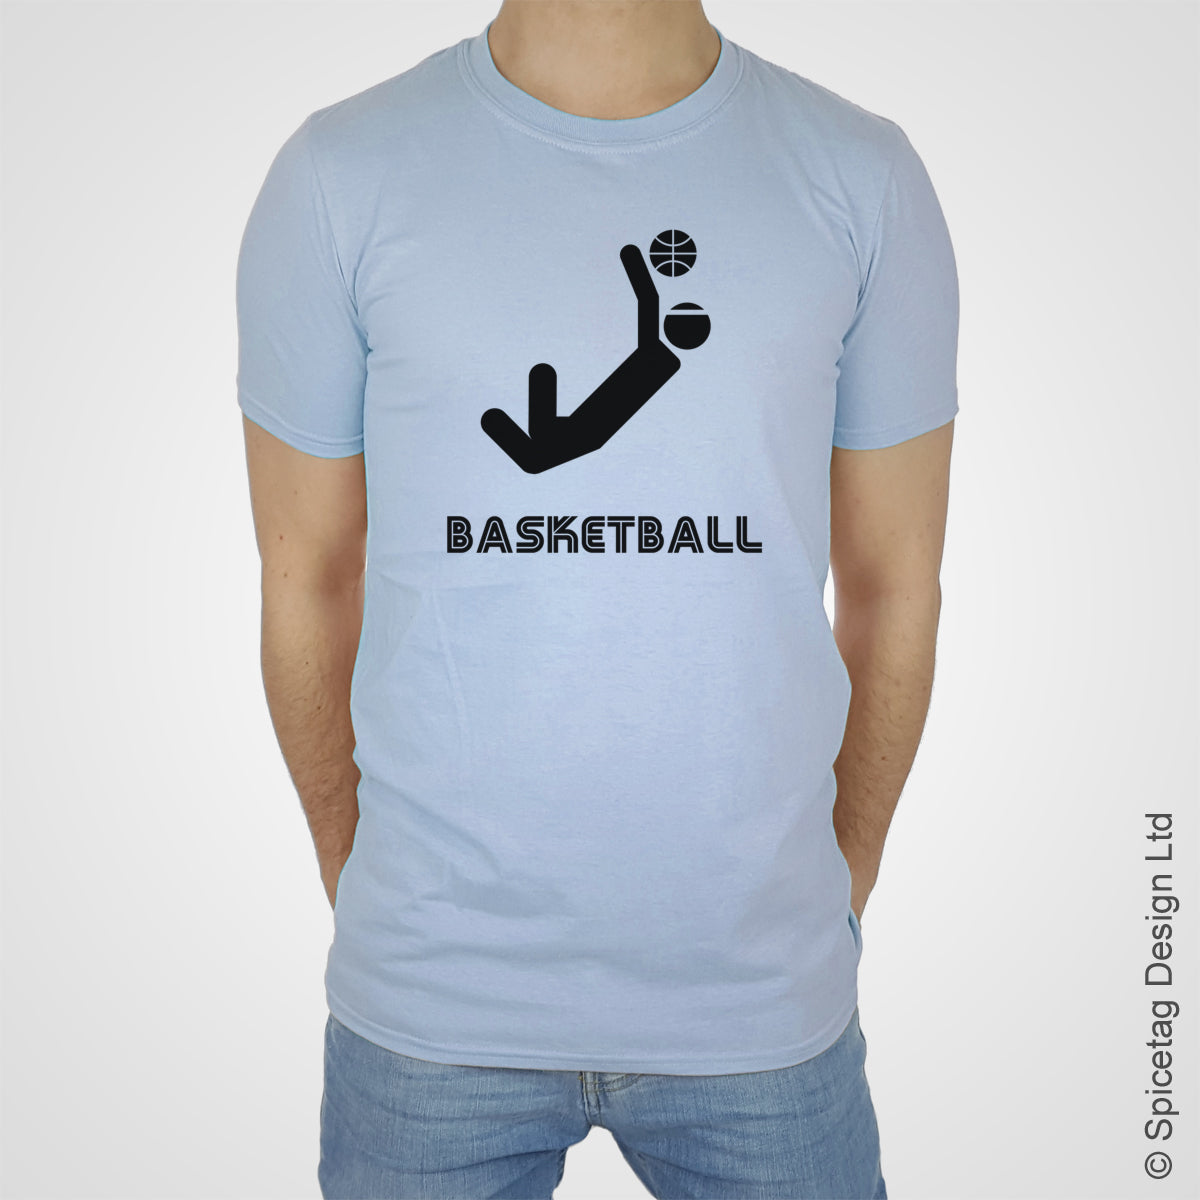 Basketball baller ball T-shirt Tshirt T shirt Tee clothing clothes fashion style sport sports fan olympics athletics track field health fitness world competition champion